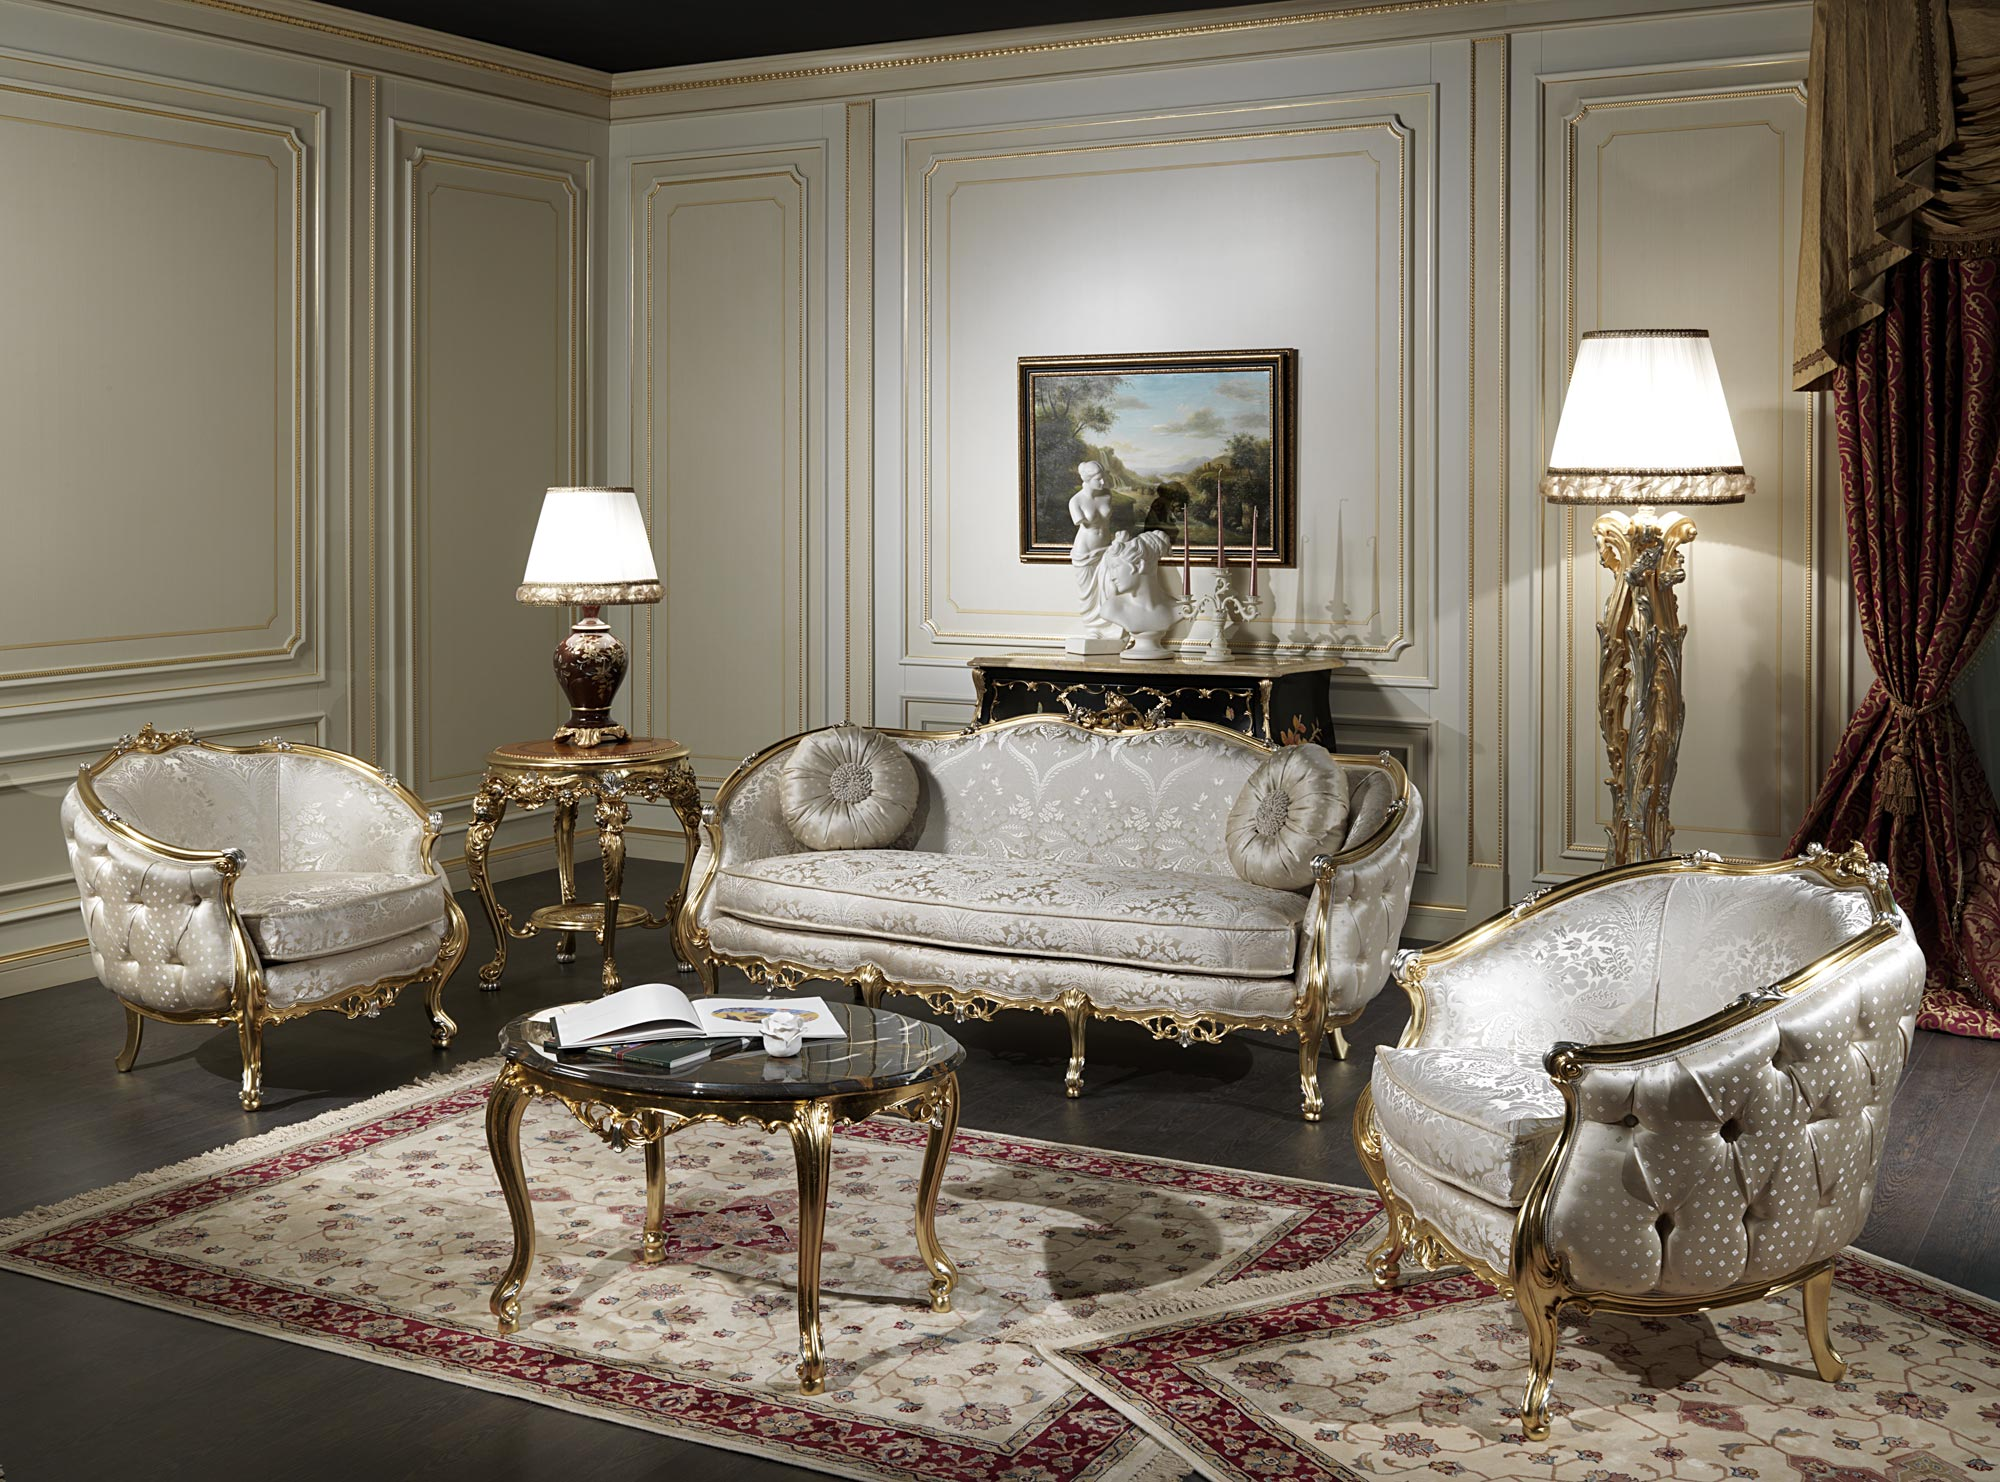 Classic living room furniture venezia vimercati classic for Upscale living room furniture